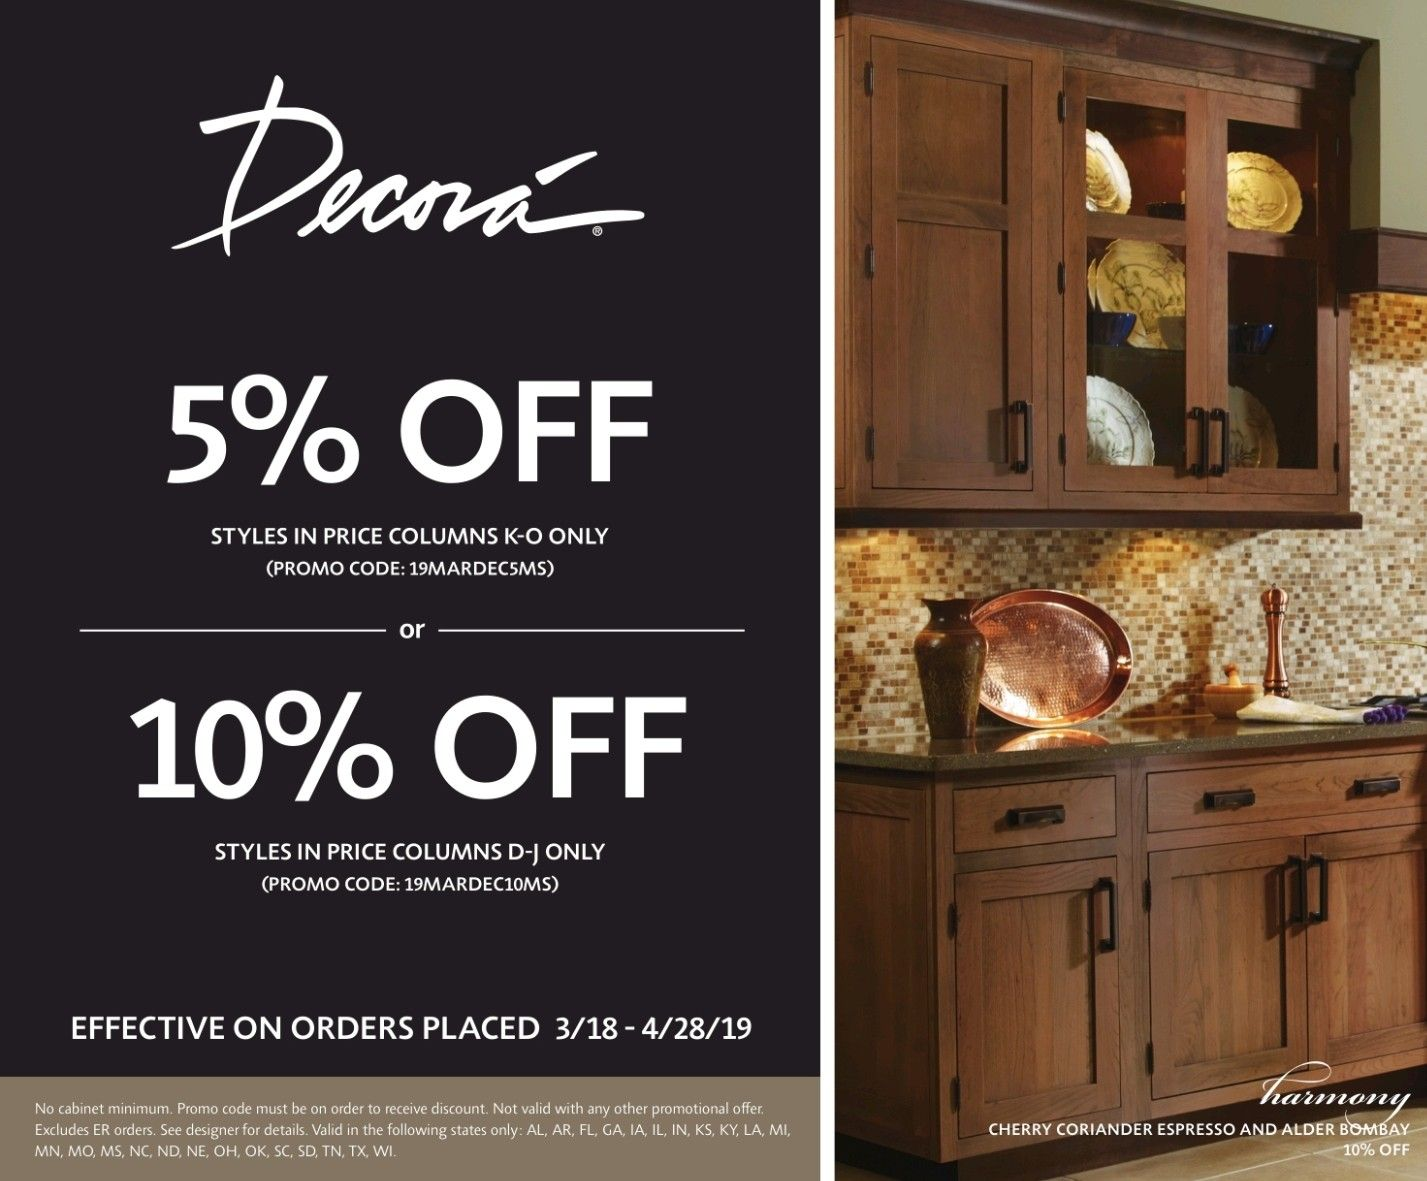 Decora Cabinetry S Spring Promo Up To 10 Off Select Styles Today